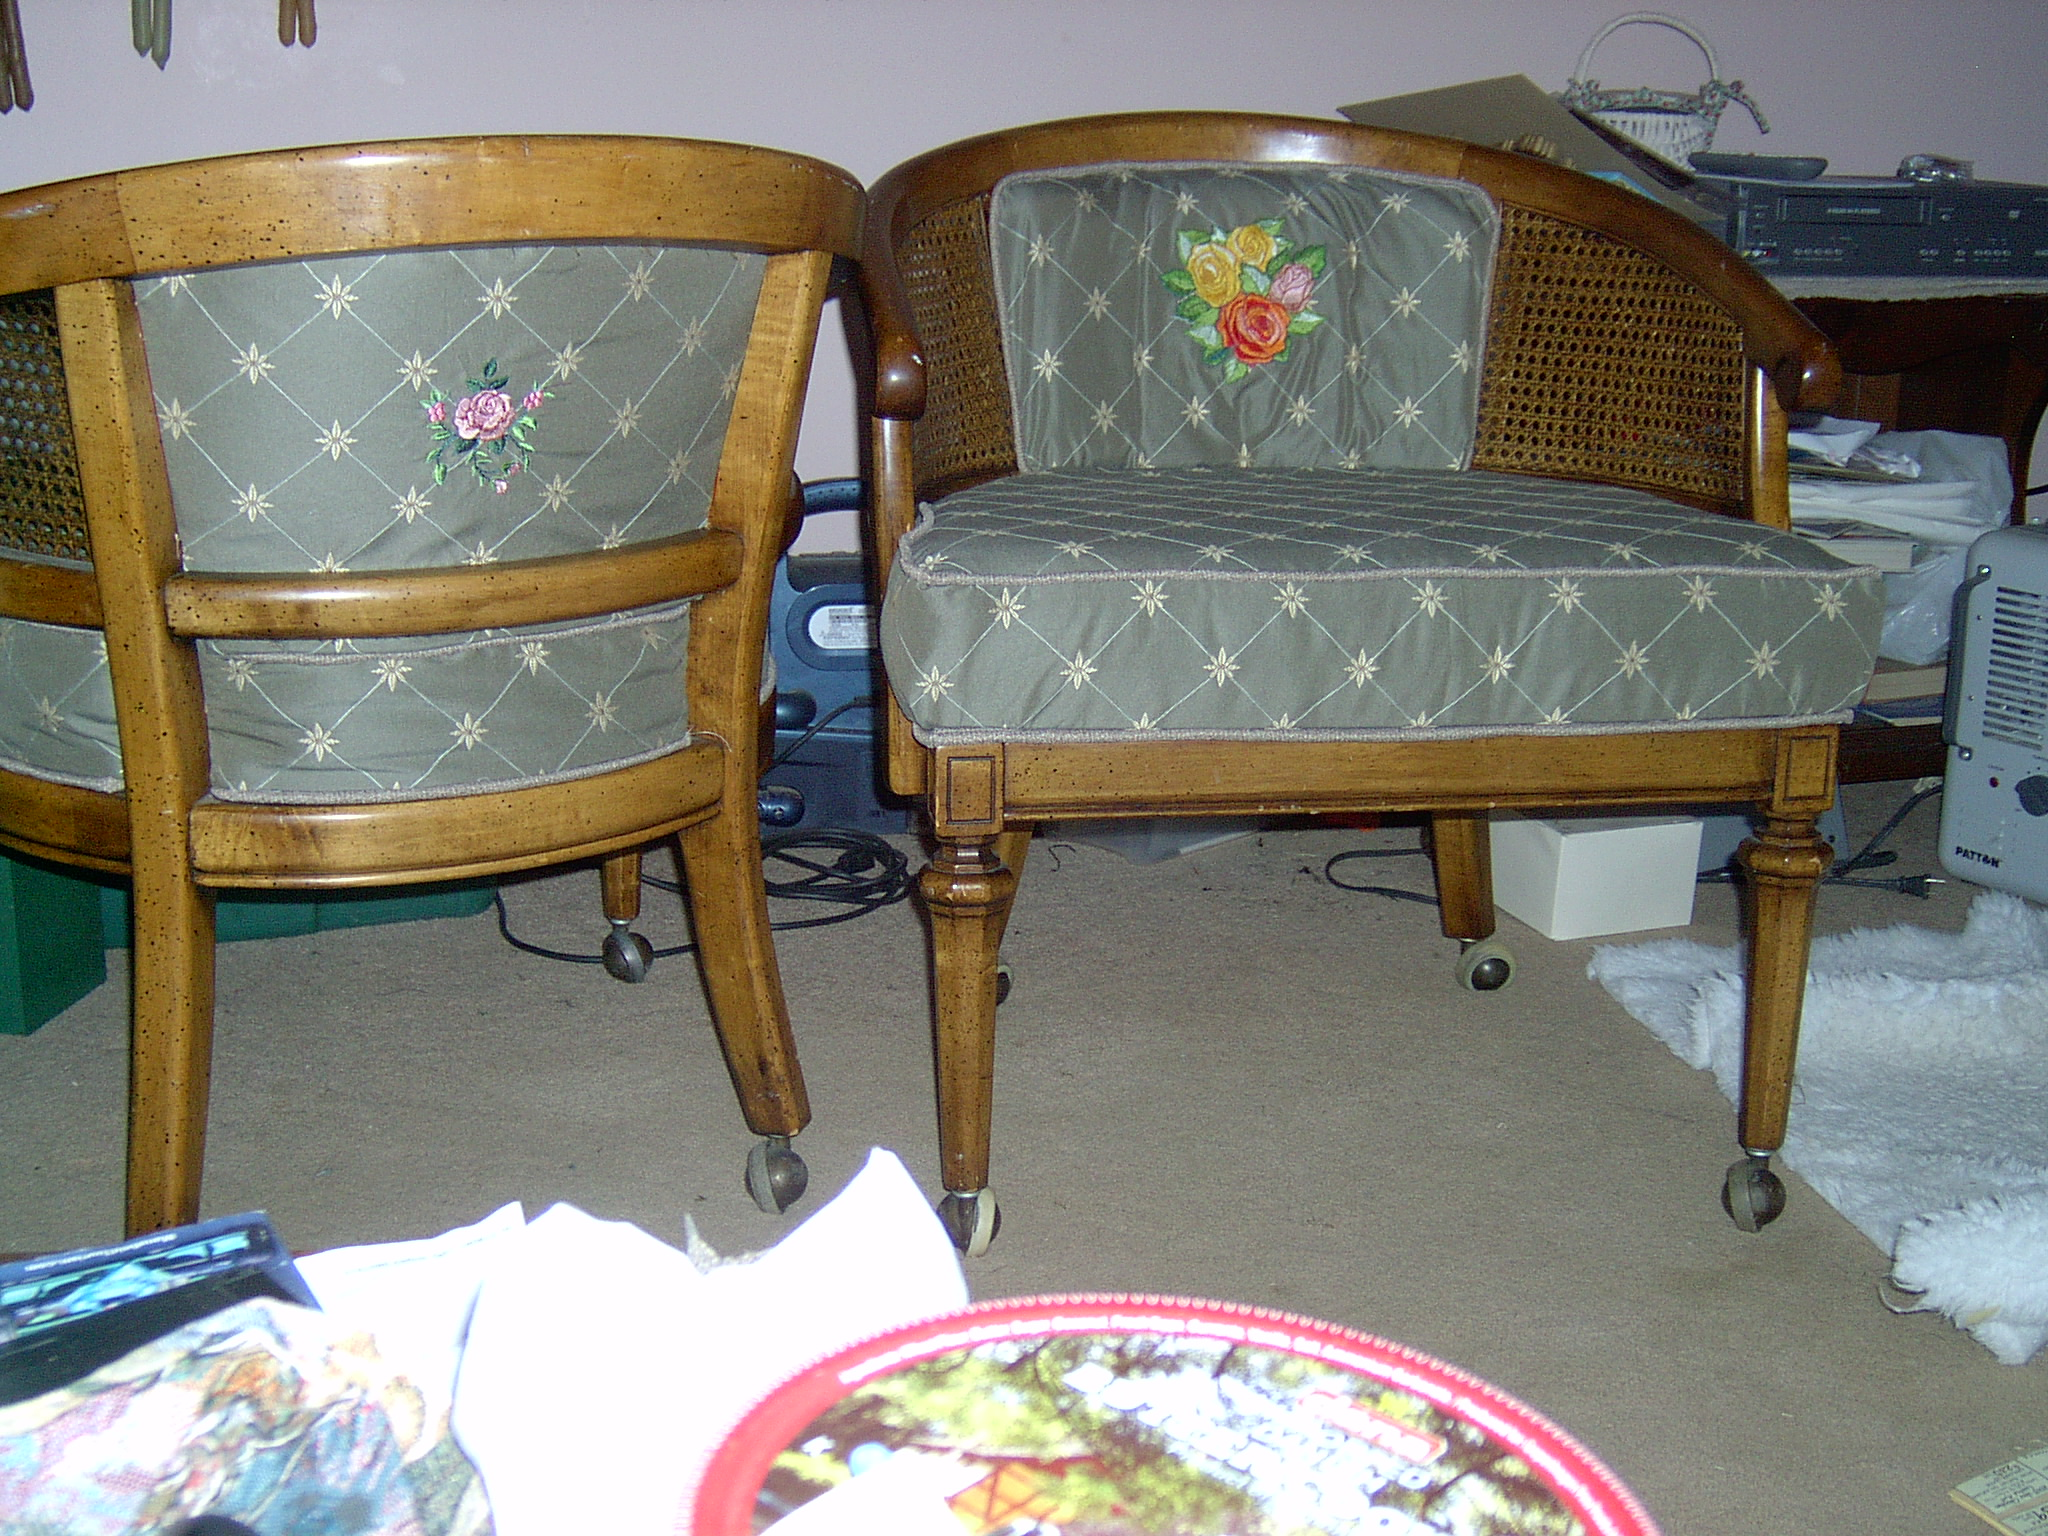 Refurbished Chairs Free Embroidery Designs Cute Embroidery Designs